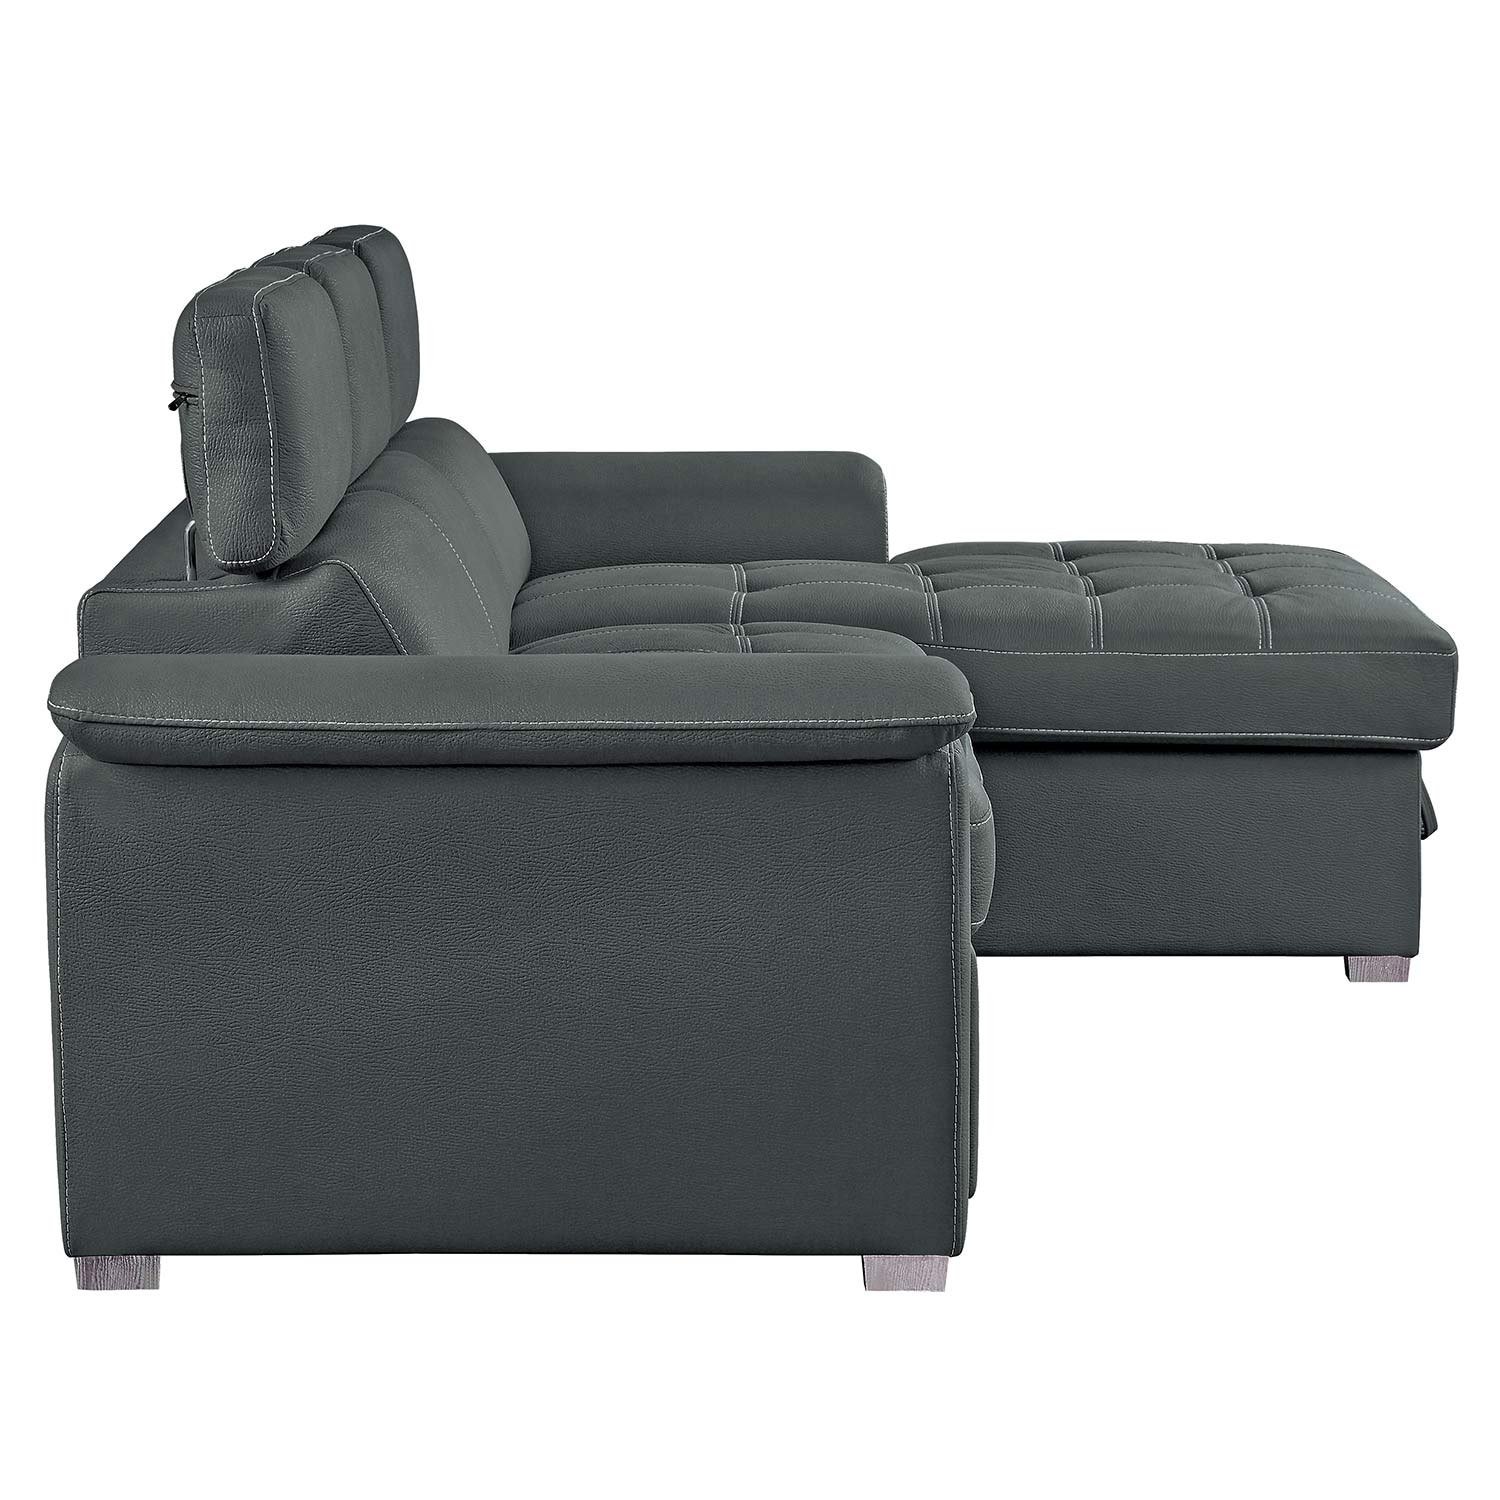 Homelegance Ferriday Sectional with Pull-out Bed and Hidden Storage - Gray